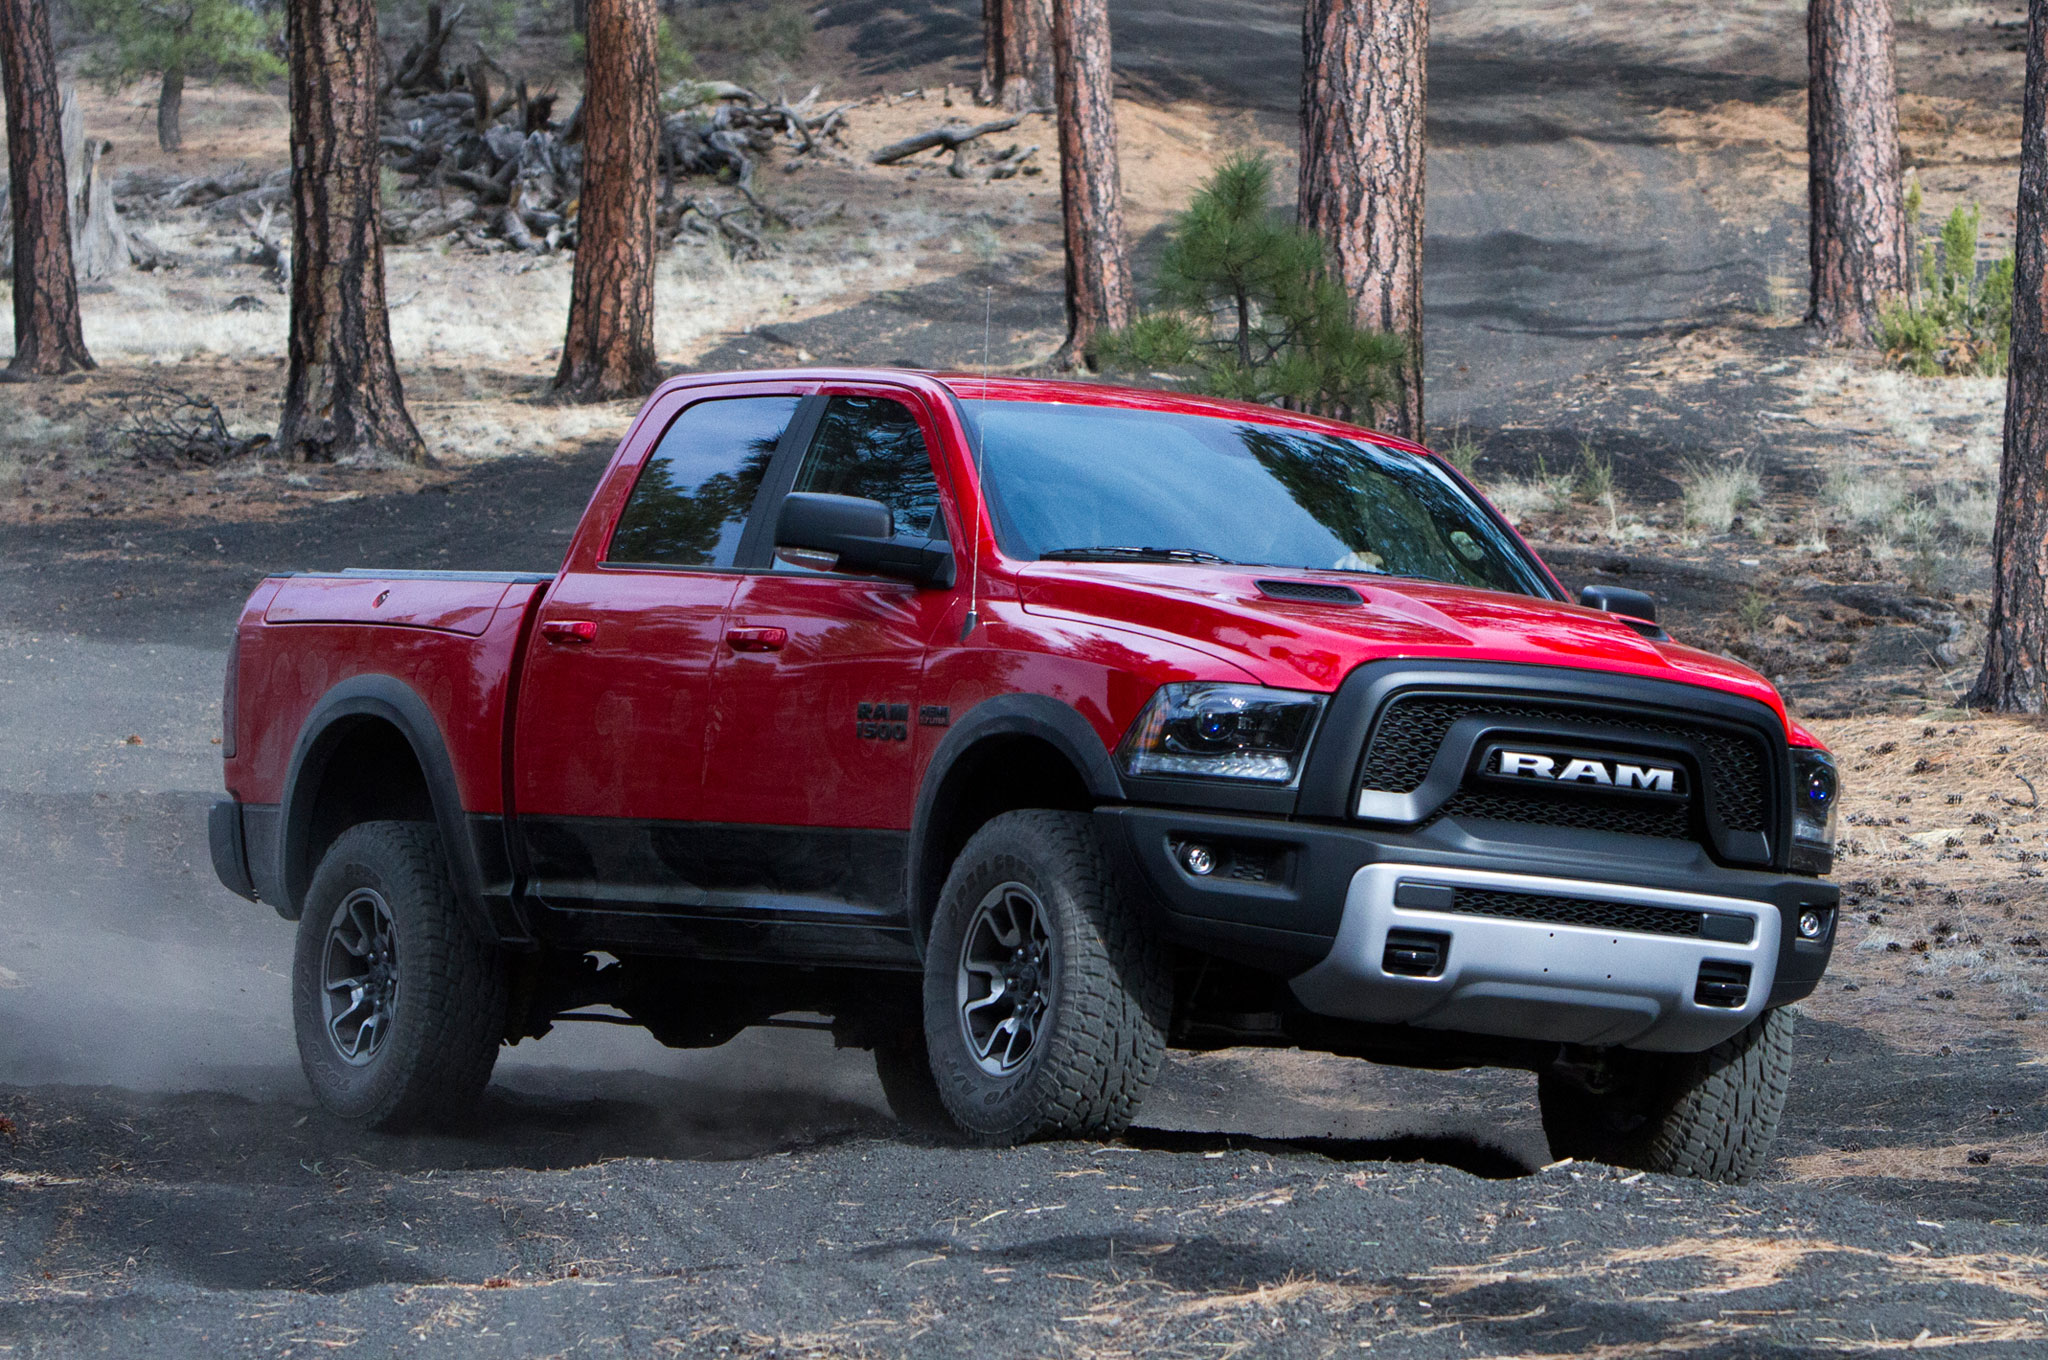 2016 ram 1500 rebel crew cab 4x4 review - Crew cab dodge ram ...